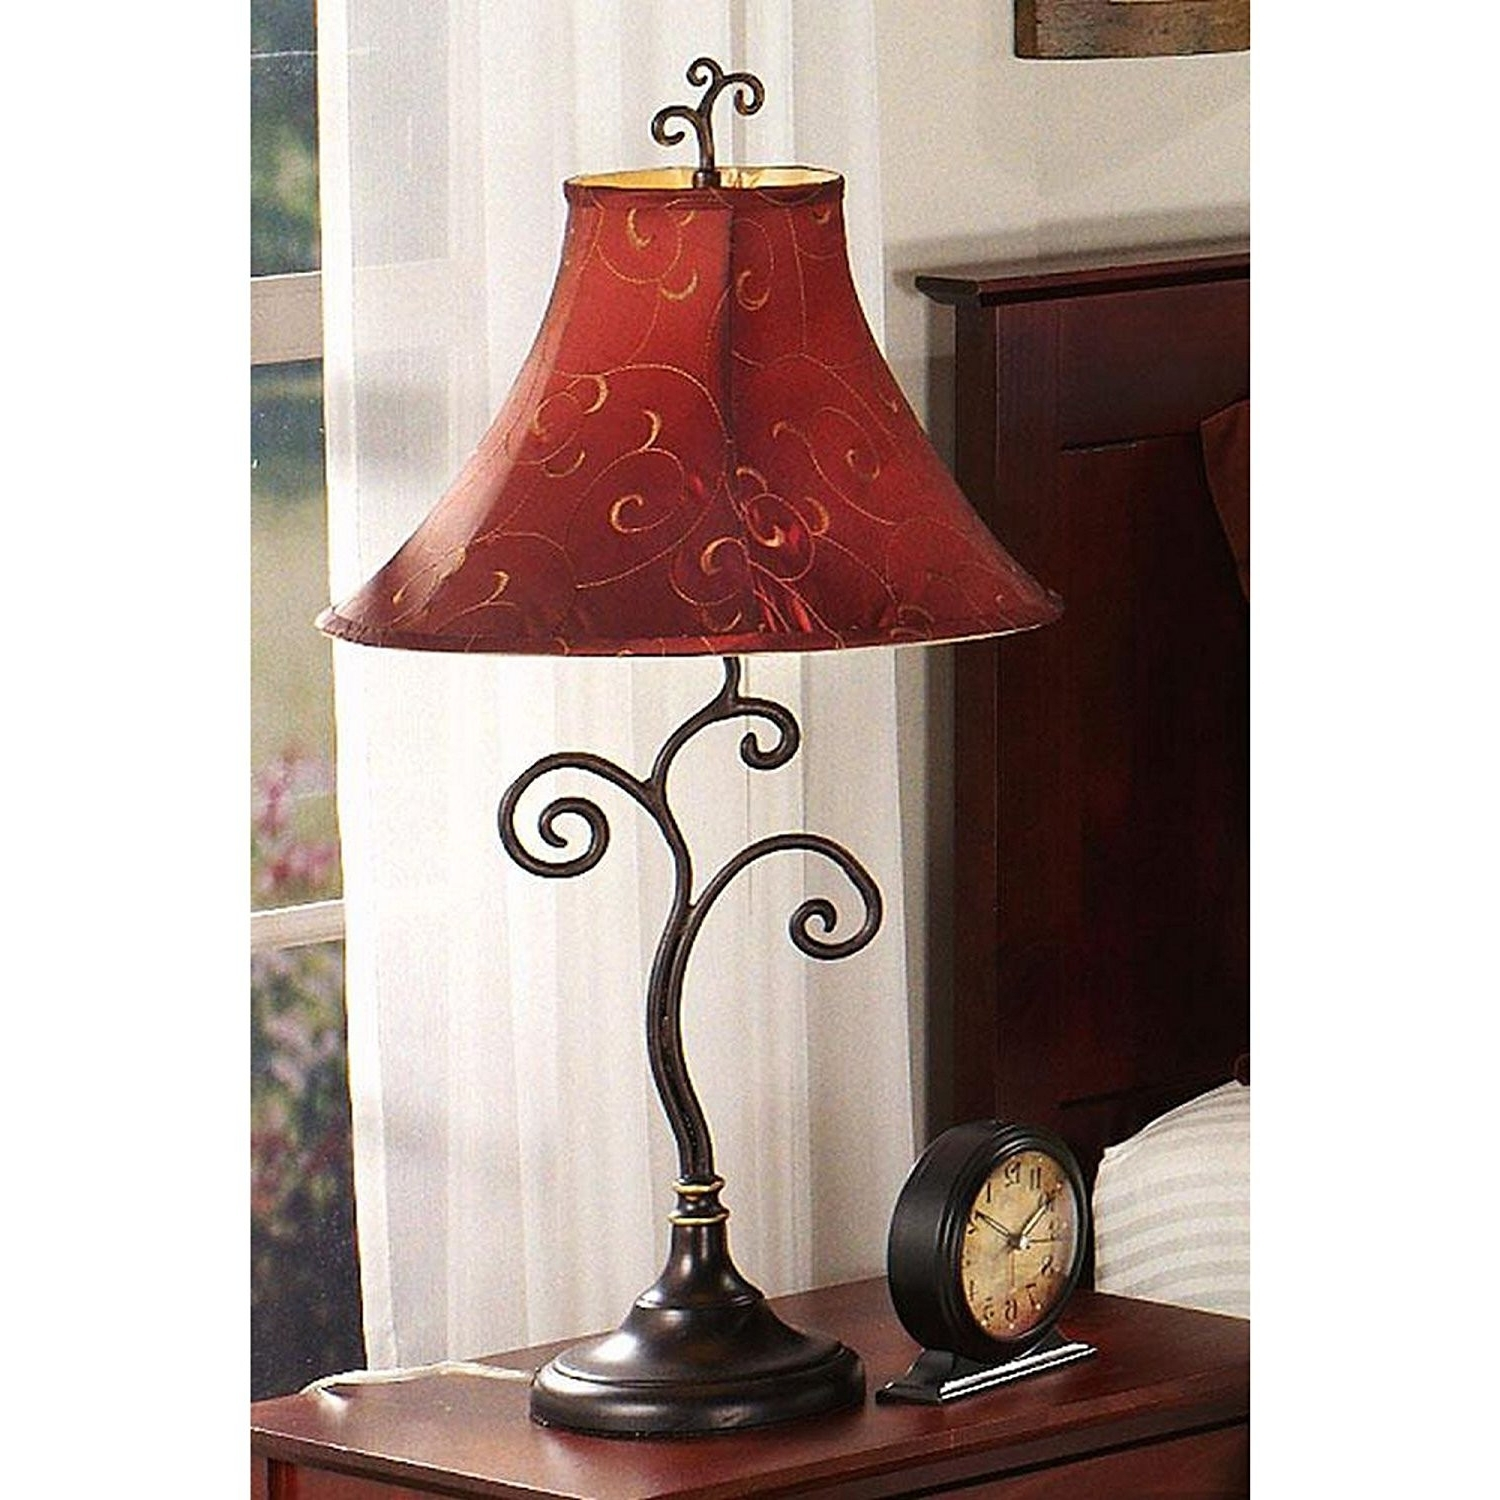 Newest Red Living Room Table Lamps Intended For Stunning Design Red Table Lamps For Living Room Red Table Lamps For (View 3 of 20)